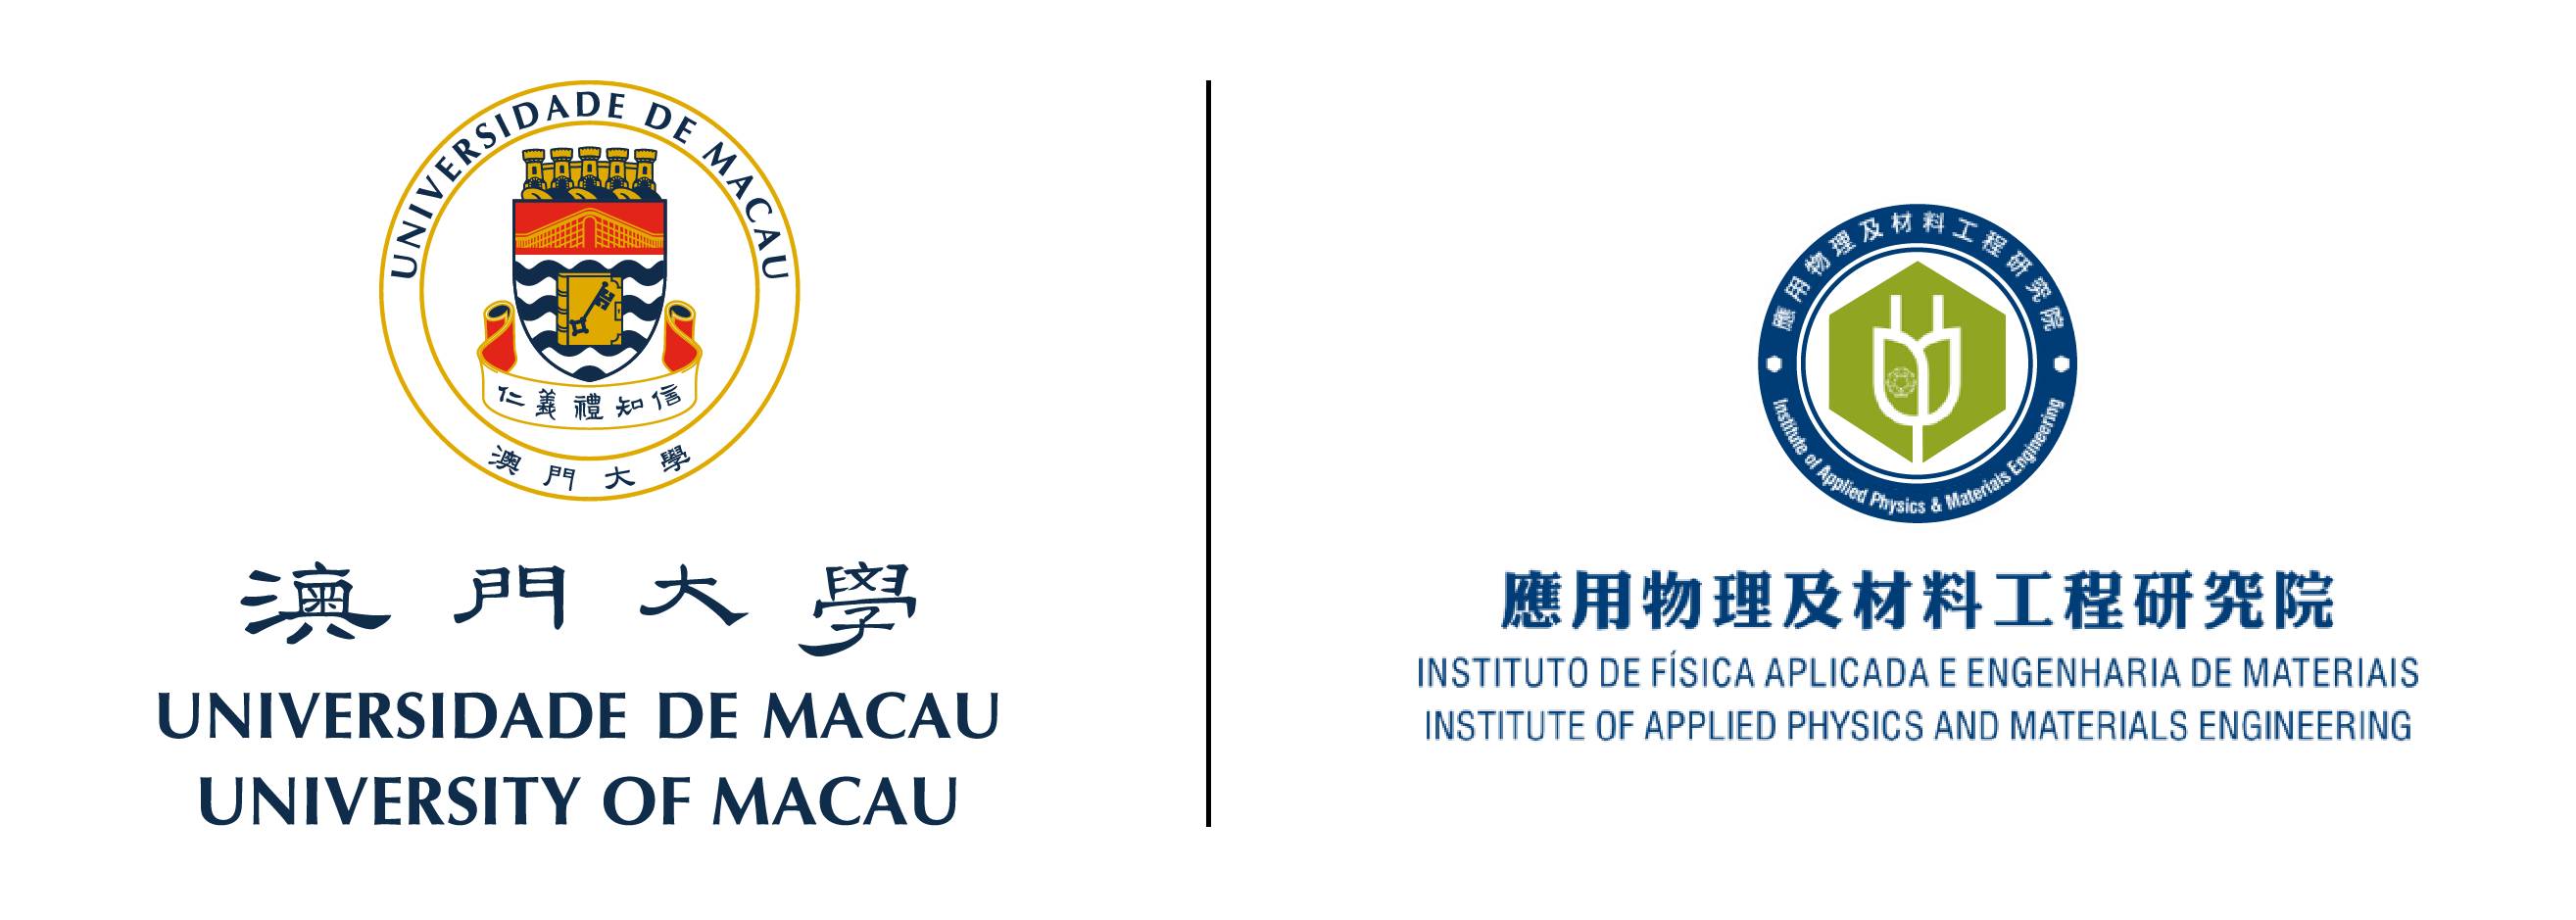 Institute of Applied Physics and Materials Engineering | University of Macau Logo